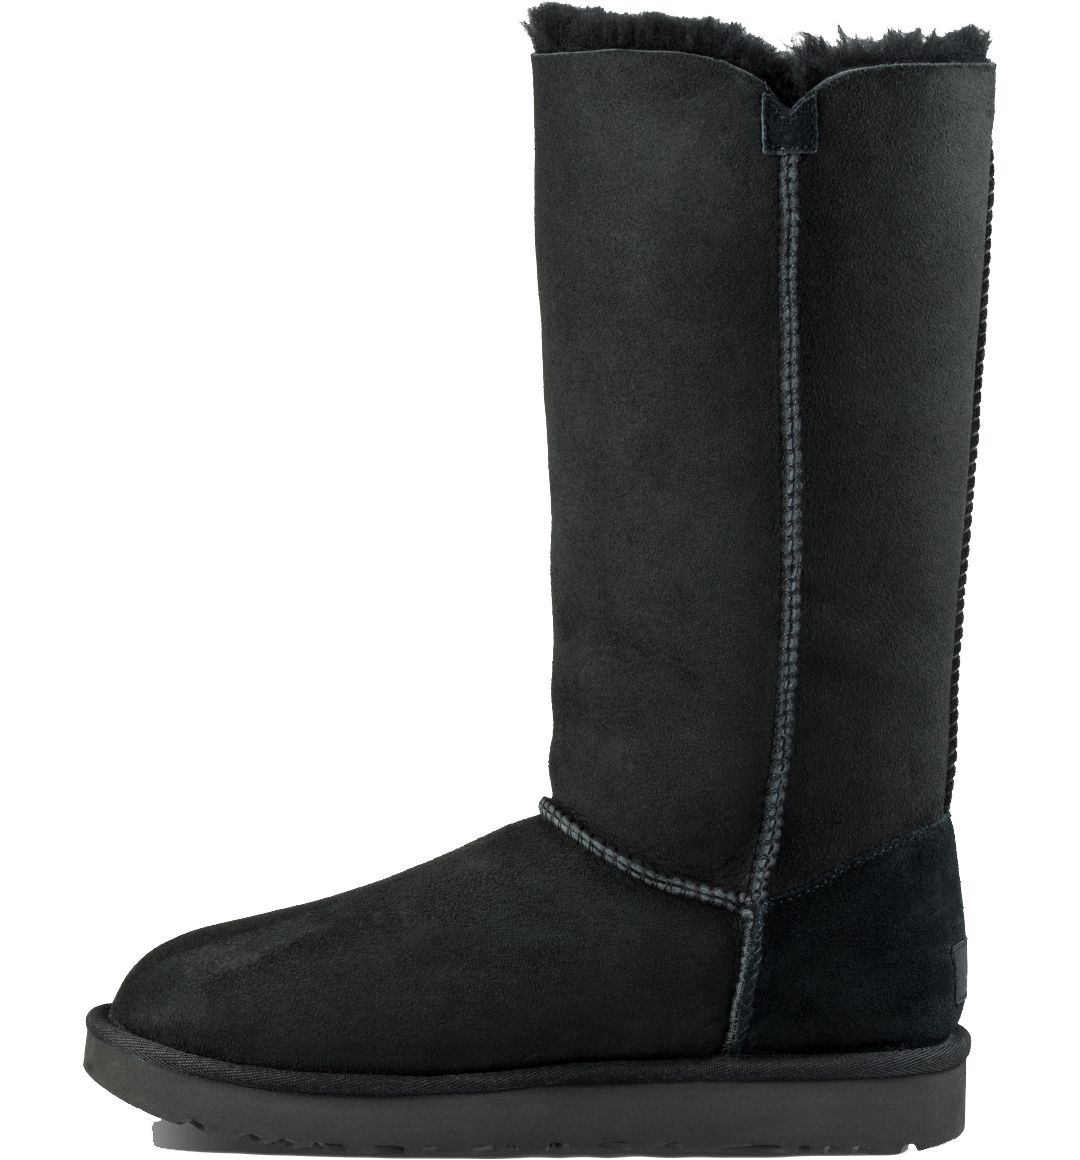 bd377213f20 UGG Australia Women's Bailey Button Triplet II Winter Boots